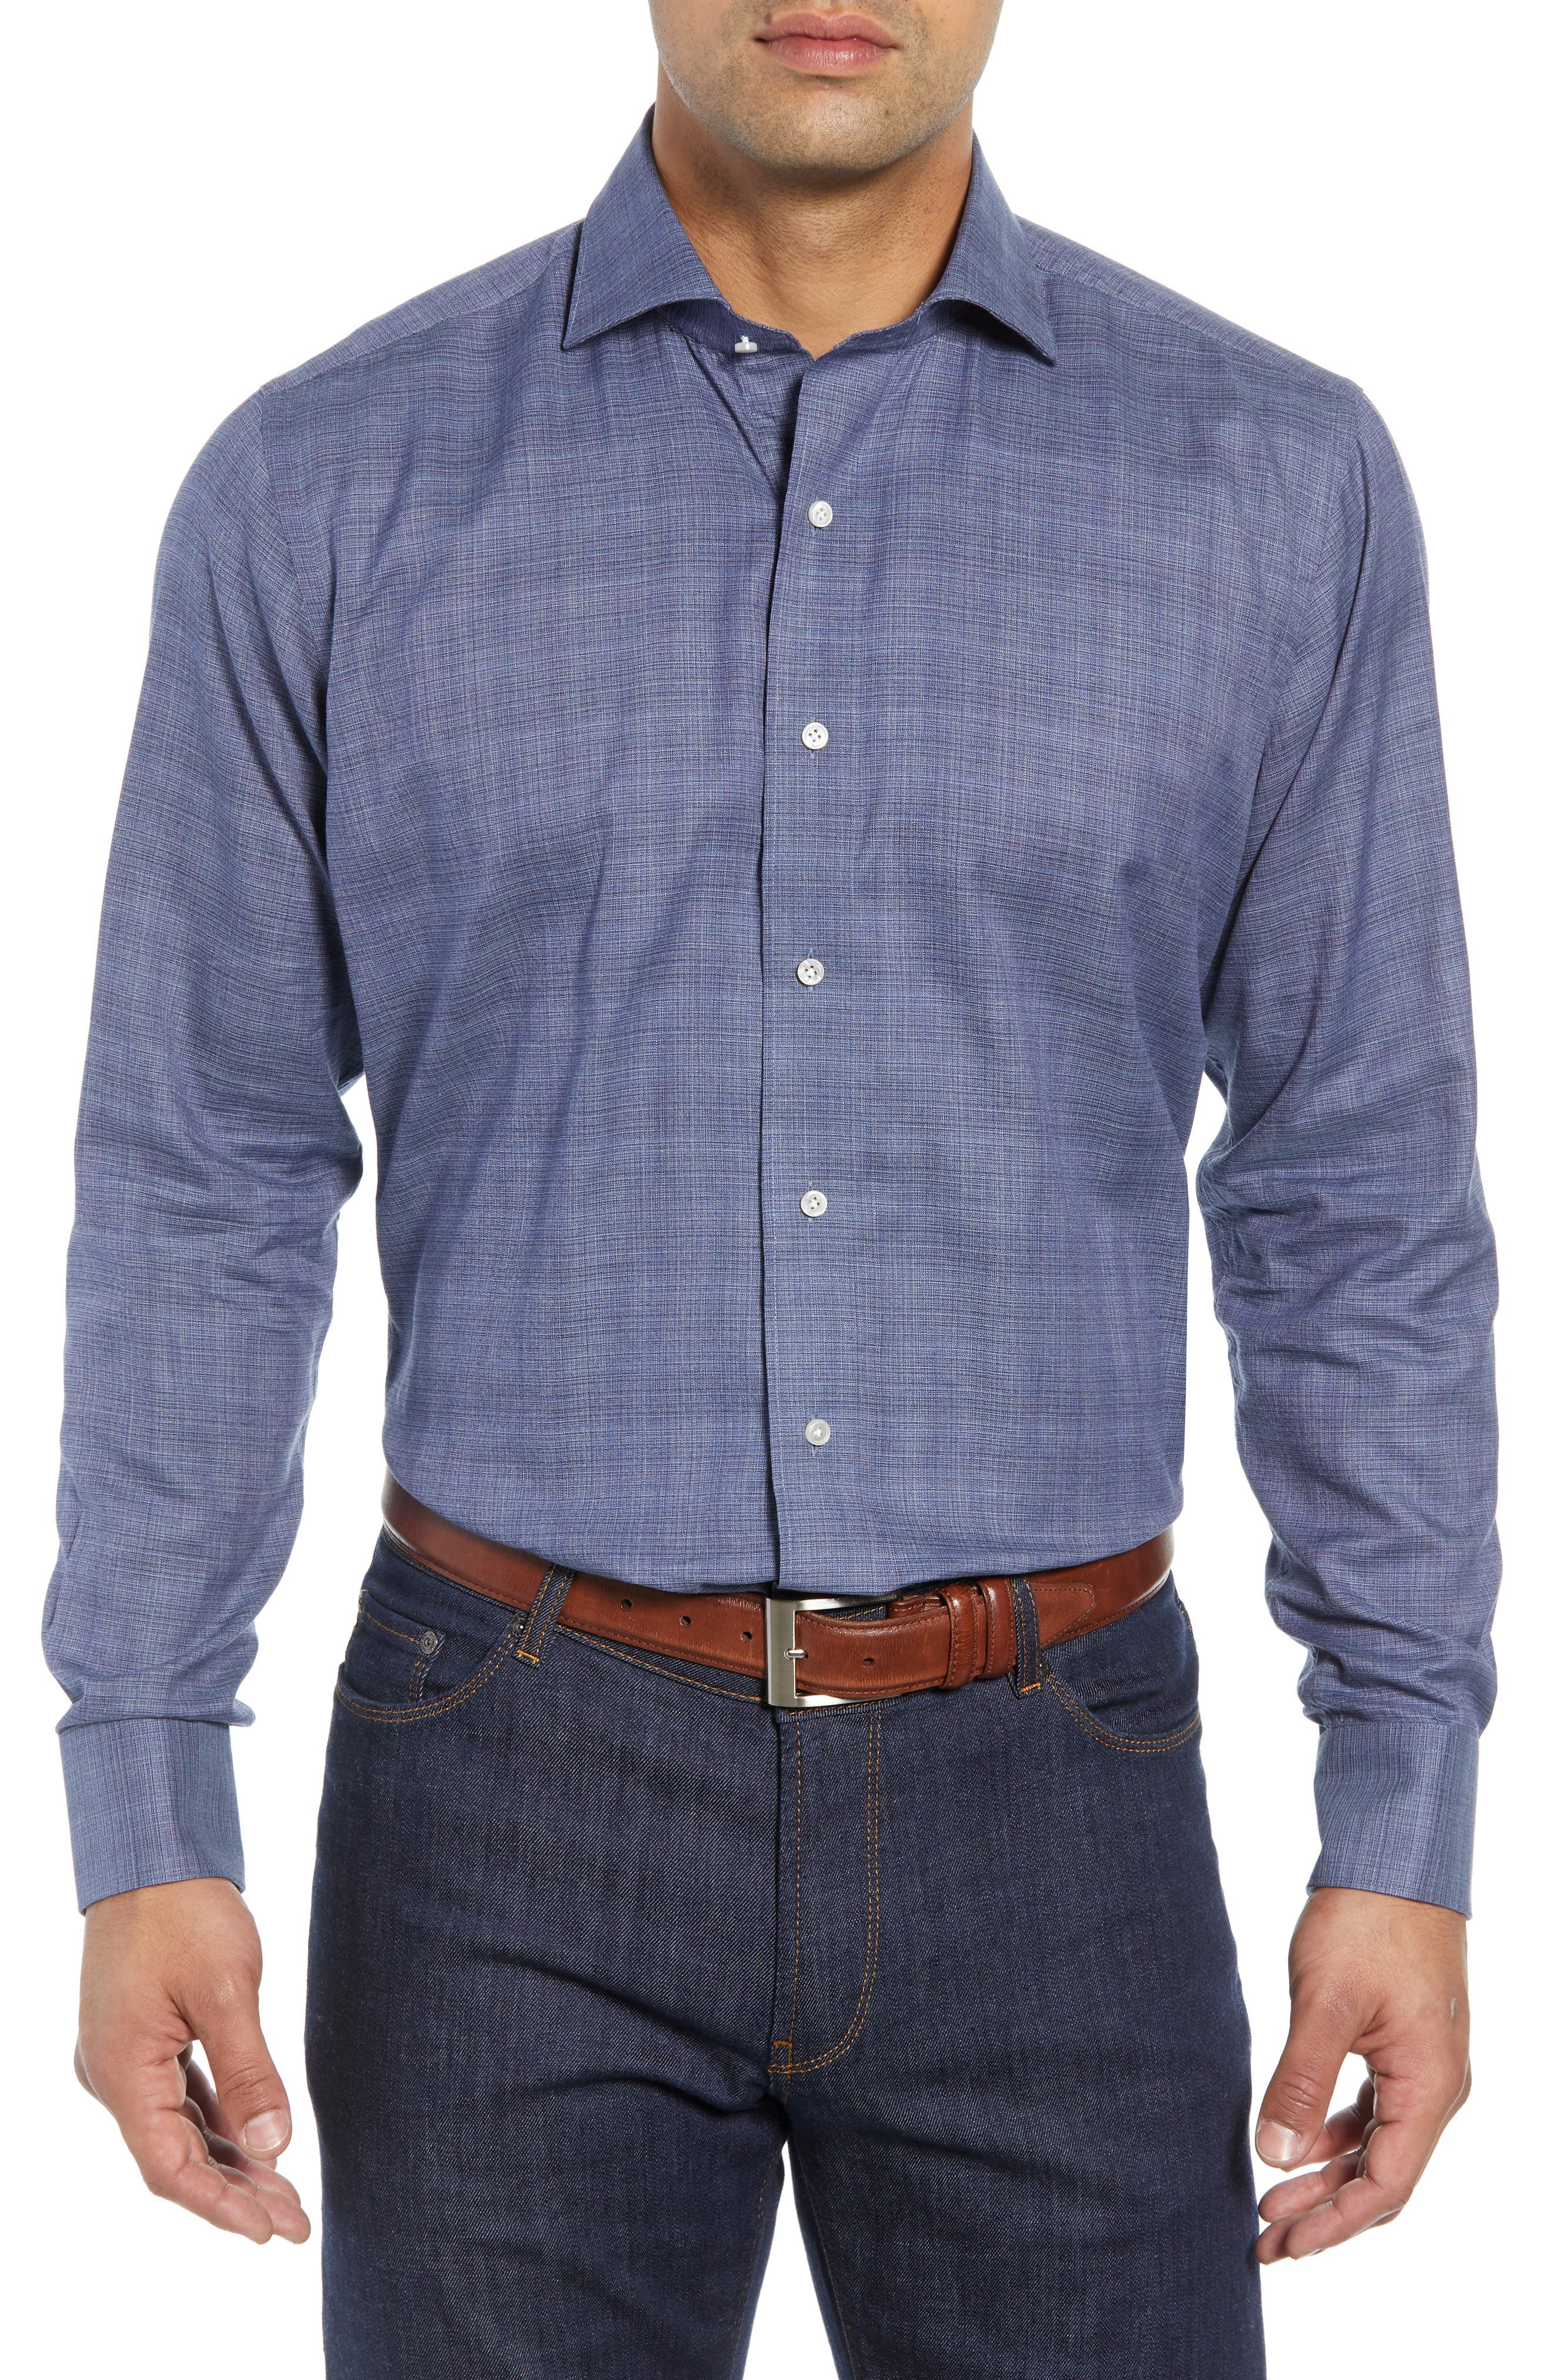 Starlight Regular Fit Chambray Sport Shirt,                         Main,                         color, 417